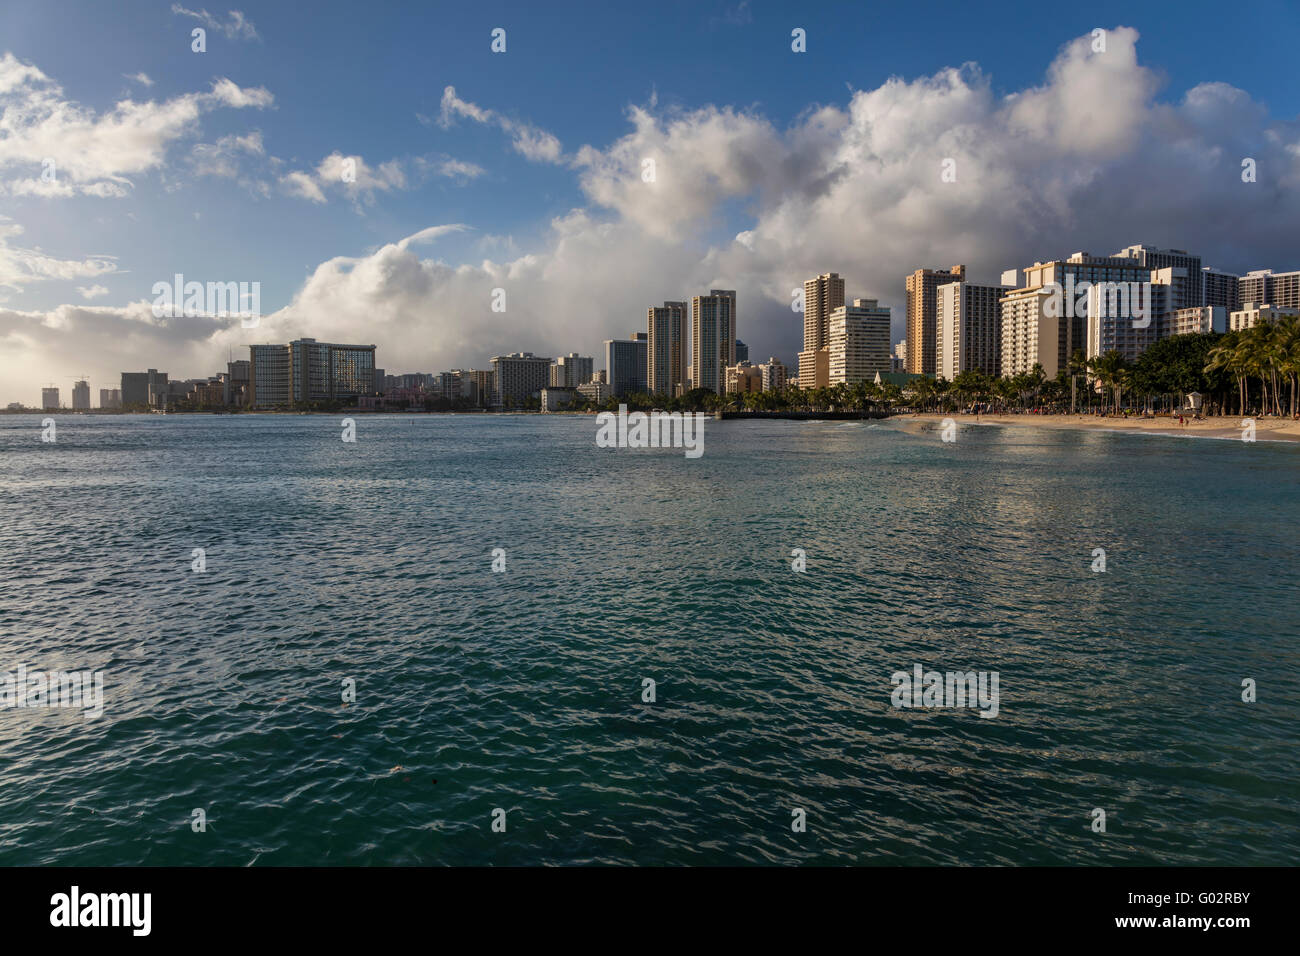 Late afternoon view of Waikiki beaches. - Stock Image